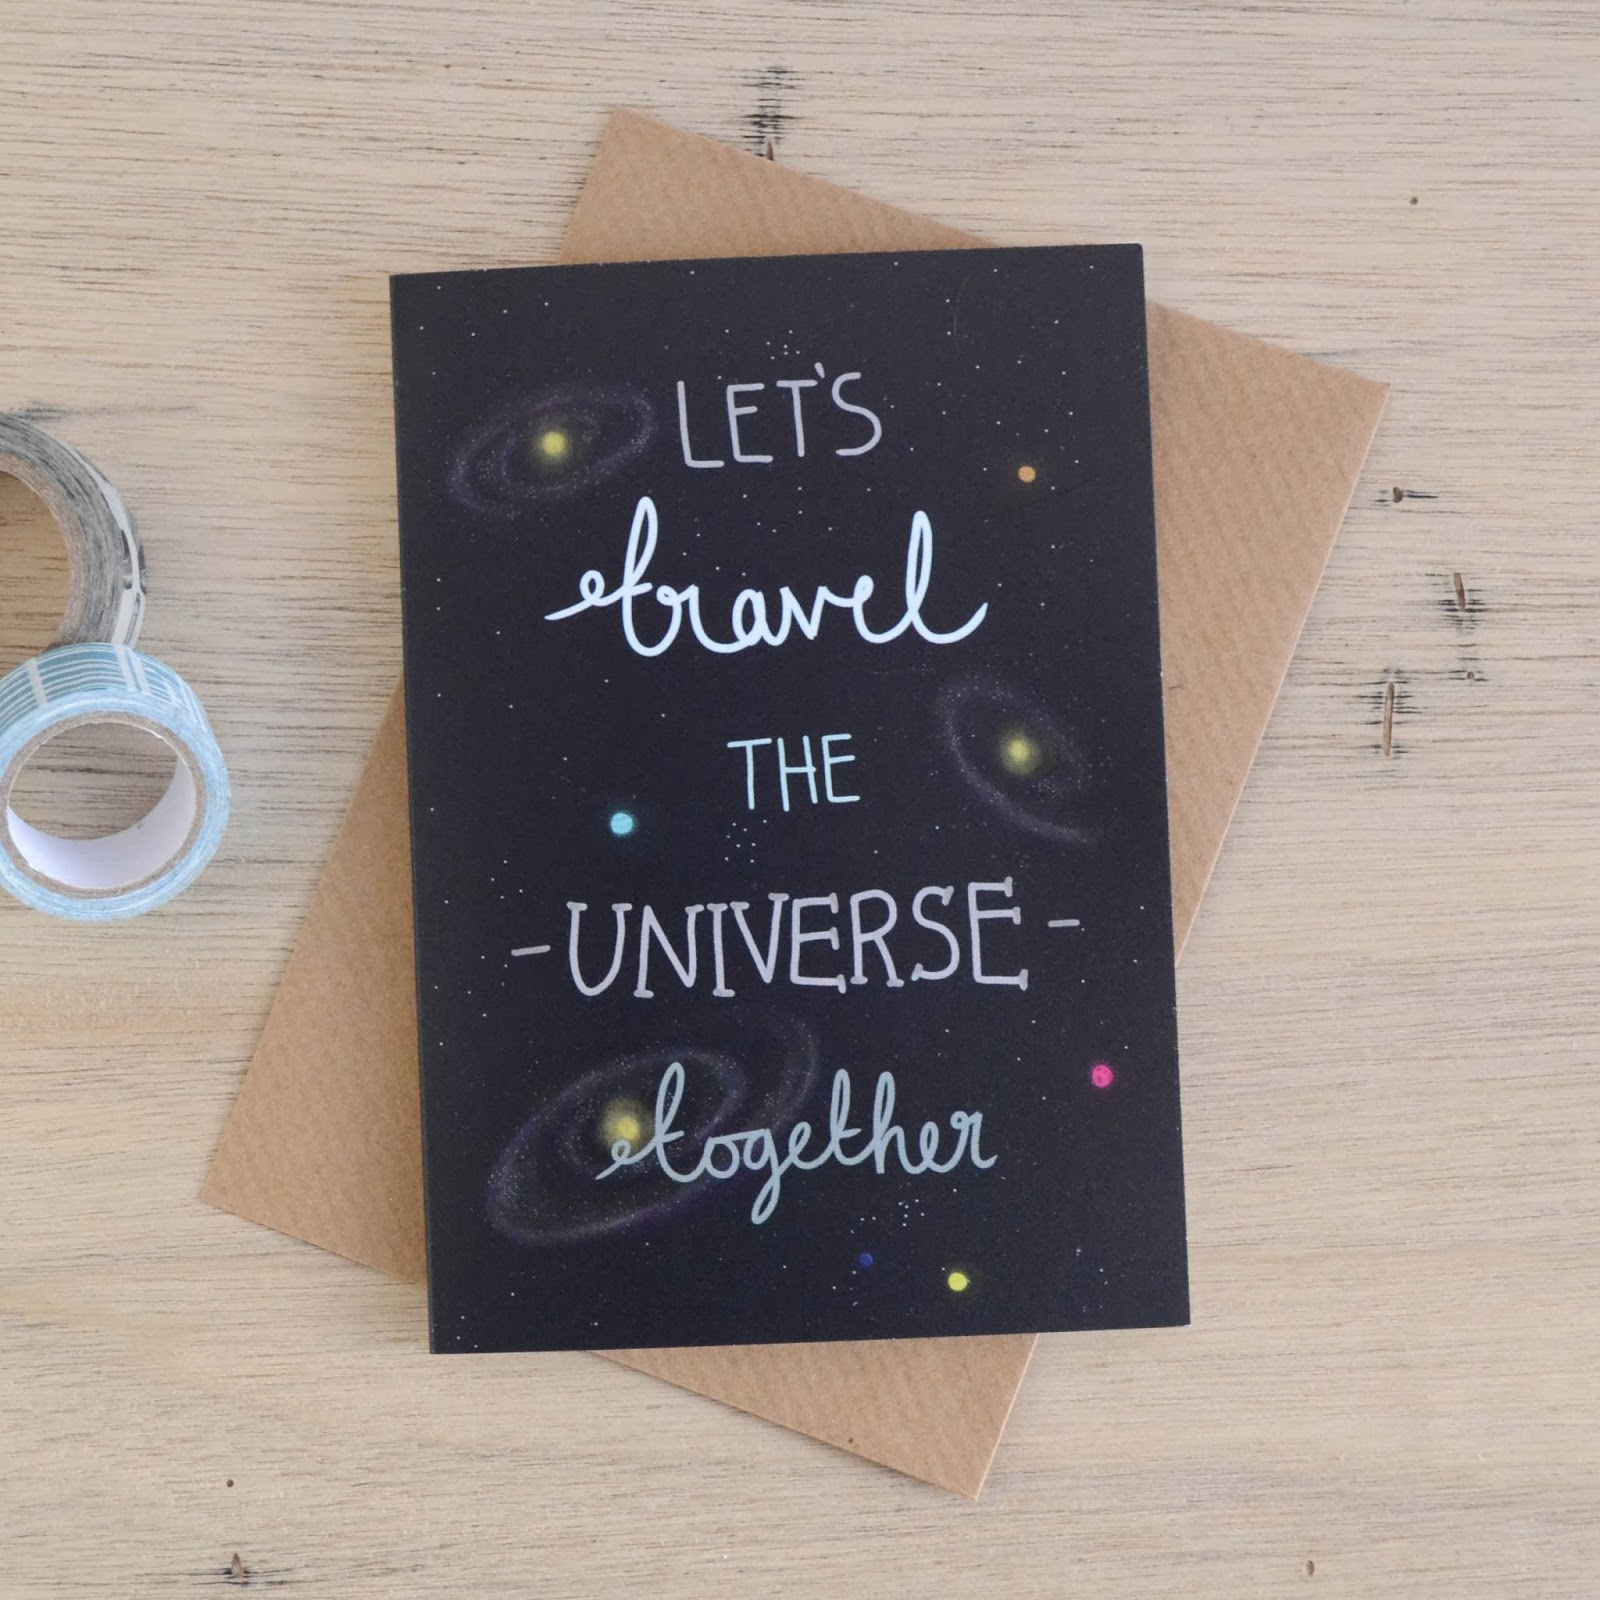 http://folksy.com/items/5725691-Let-s-Travel-The-Universe-Together